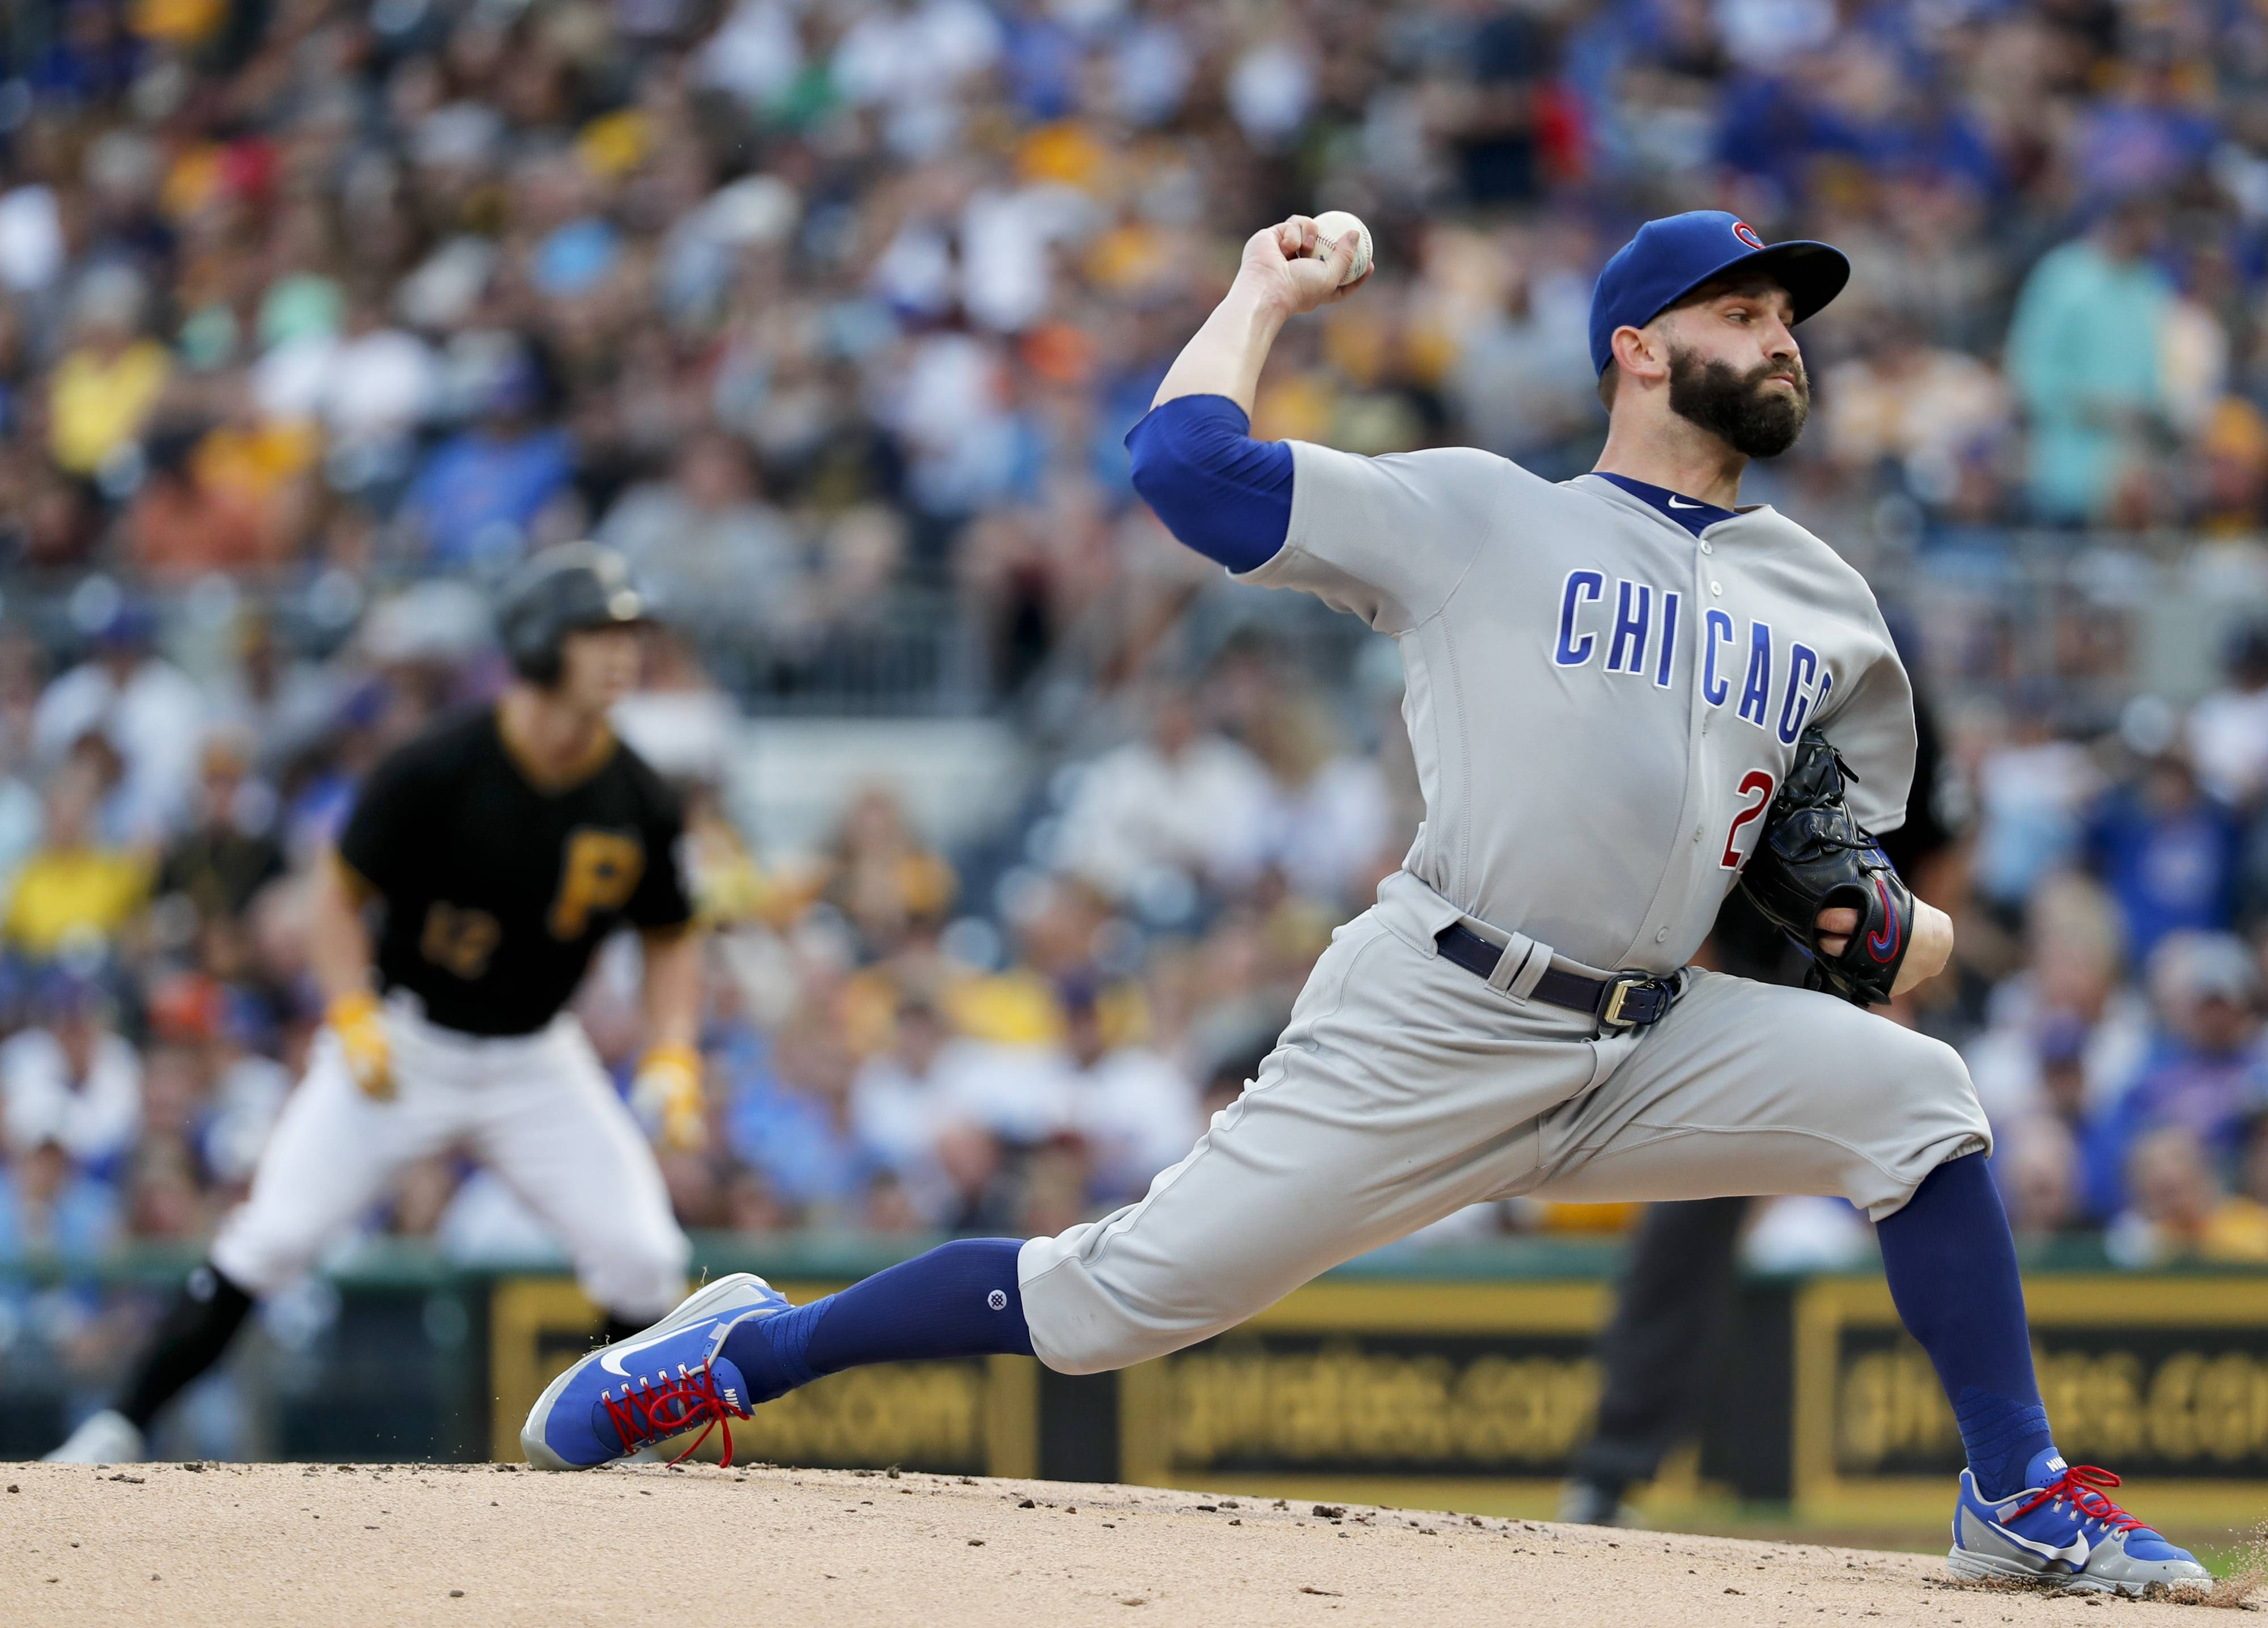 The Chicago Cubs have tweaked their starting rotation. Right-hander Tyler Chatwood, above, will start Sunday against the Arizona Diamondbacks, pushing lefty Jose Quintana to Tuesday against the Los Angeles Dodgers.